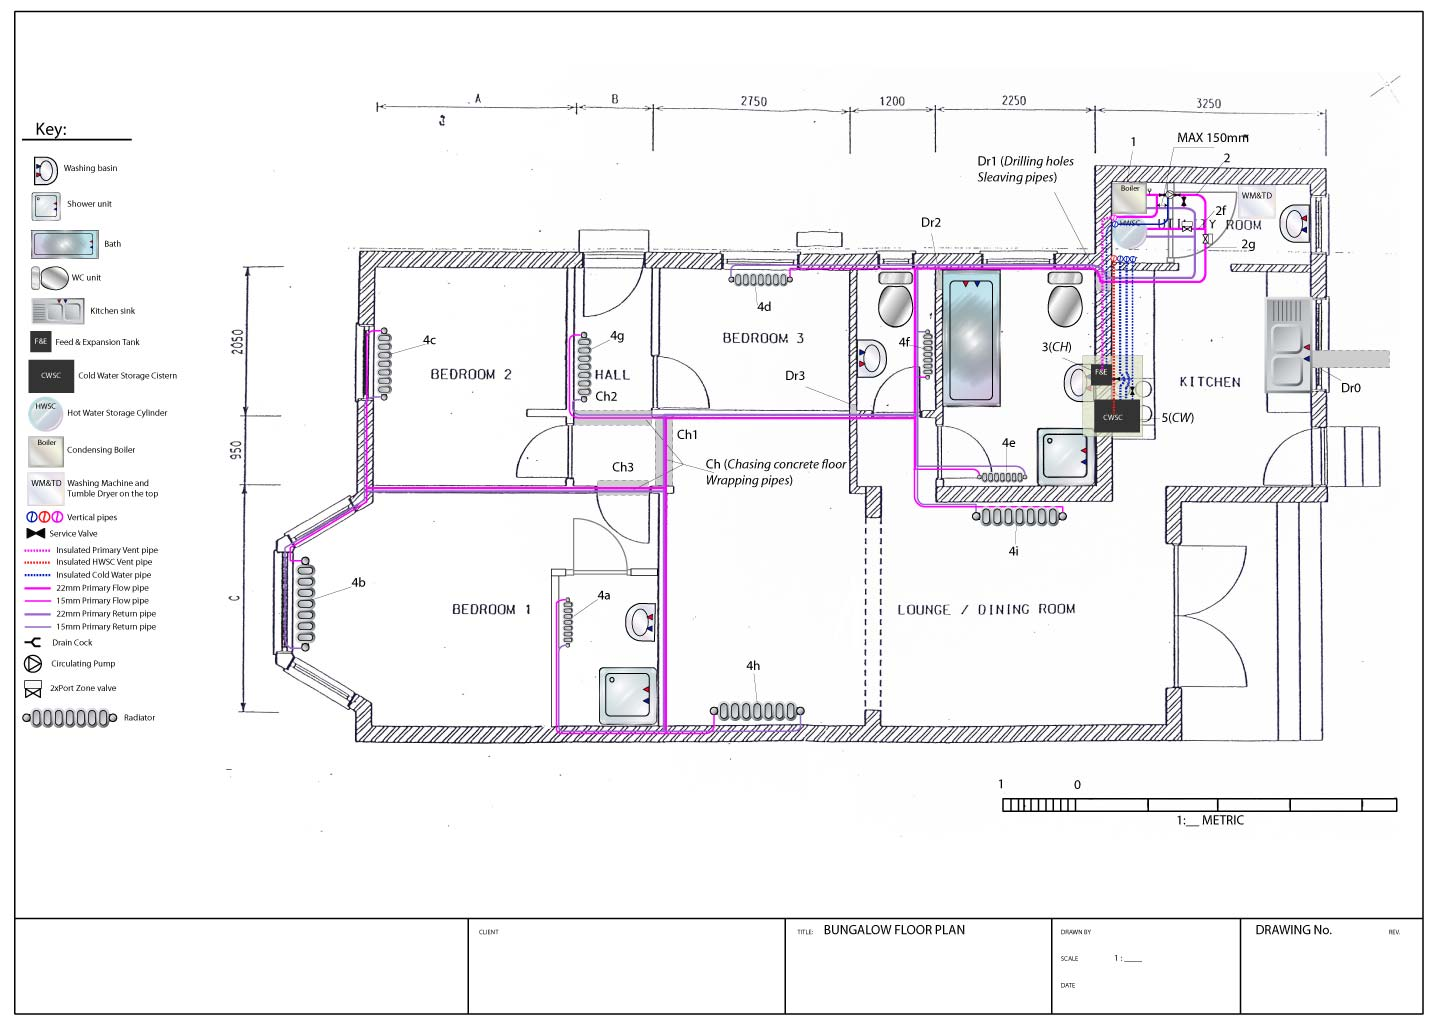 System planning and design | Bungalow Project for plumbing level 3